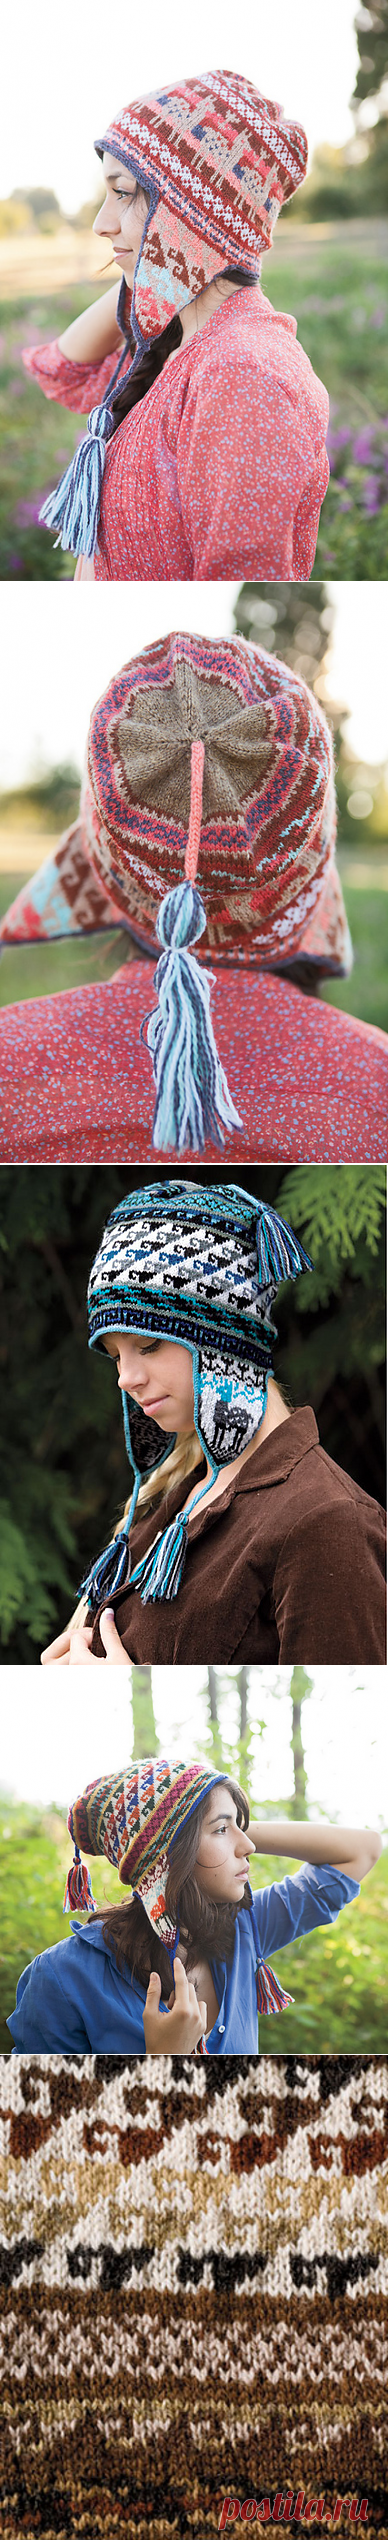 ddad2f34640 Ravelry  Andean Chullo Hat pattern by Kerin Dimeler-Laurence